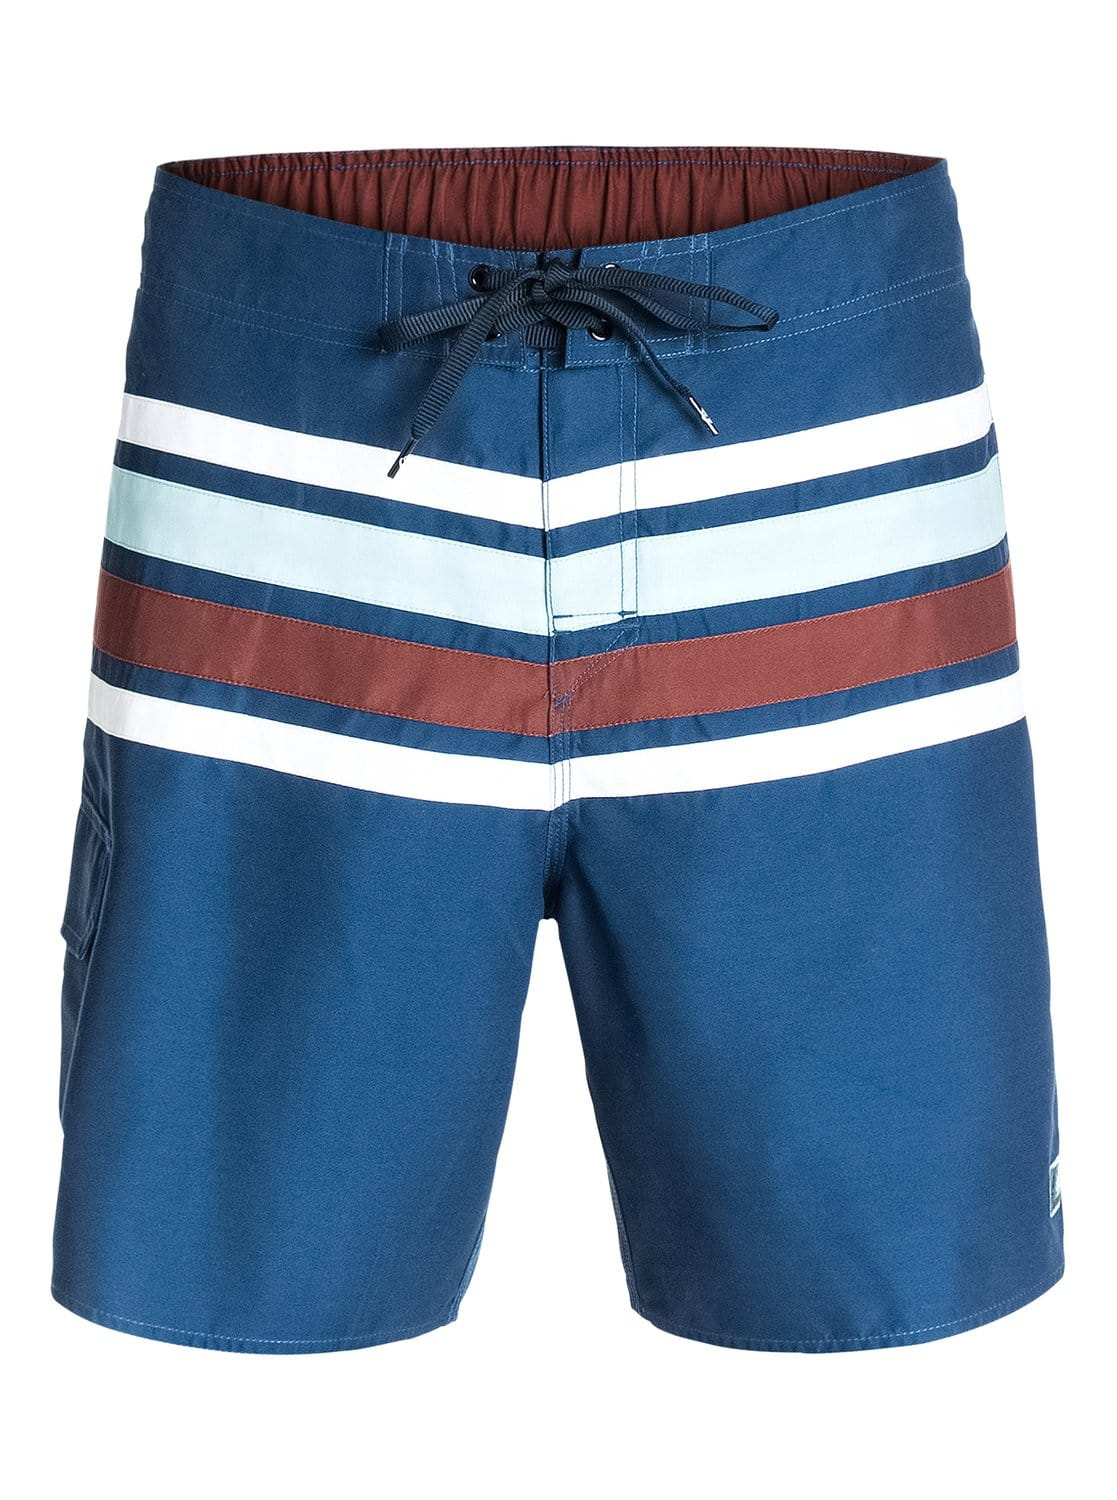 Quiksilver, DC Shoes & Roxy: Extra 40% Off Sale Items: Apparel  from $6 & More + Free S&H